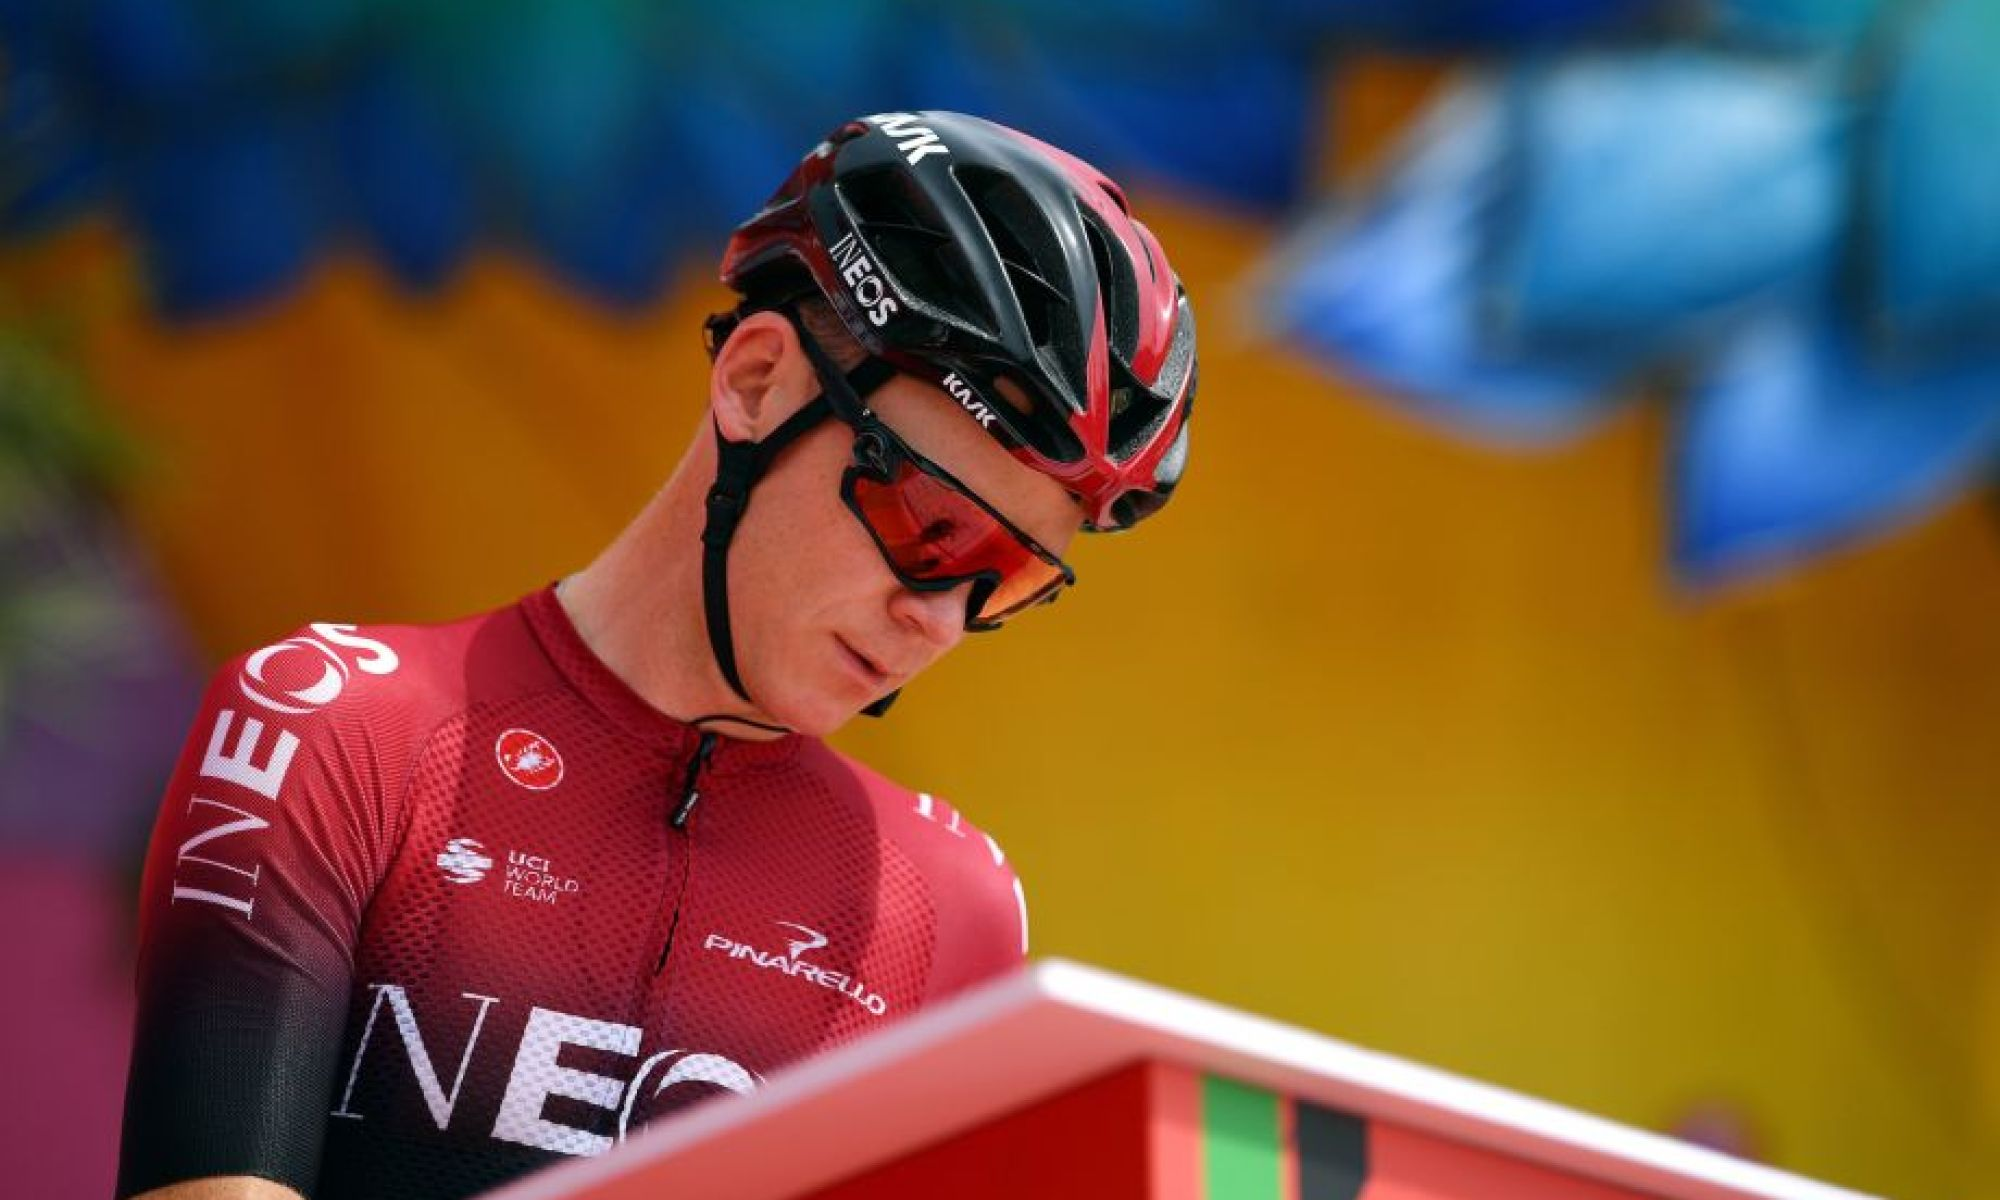 Froome's departure from Ineos is no surprise, but it still raises plenty of questions